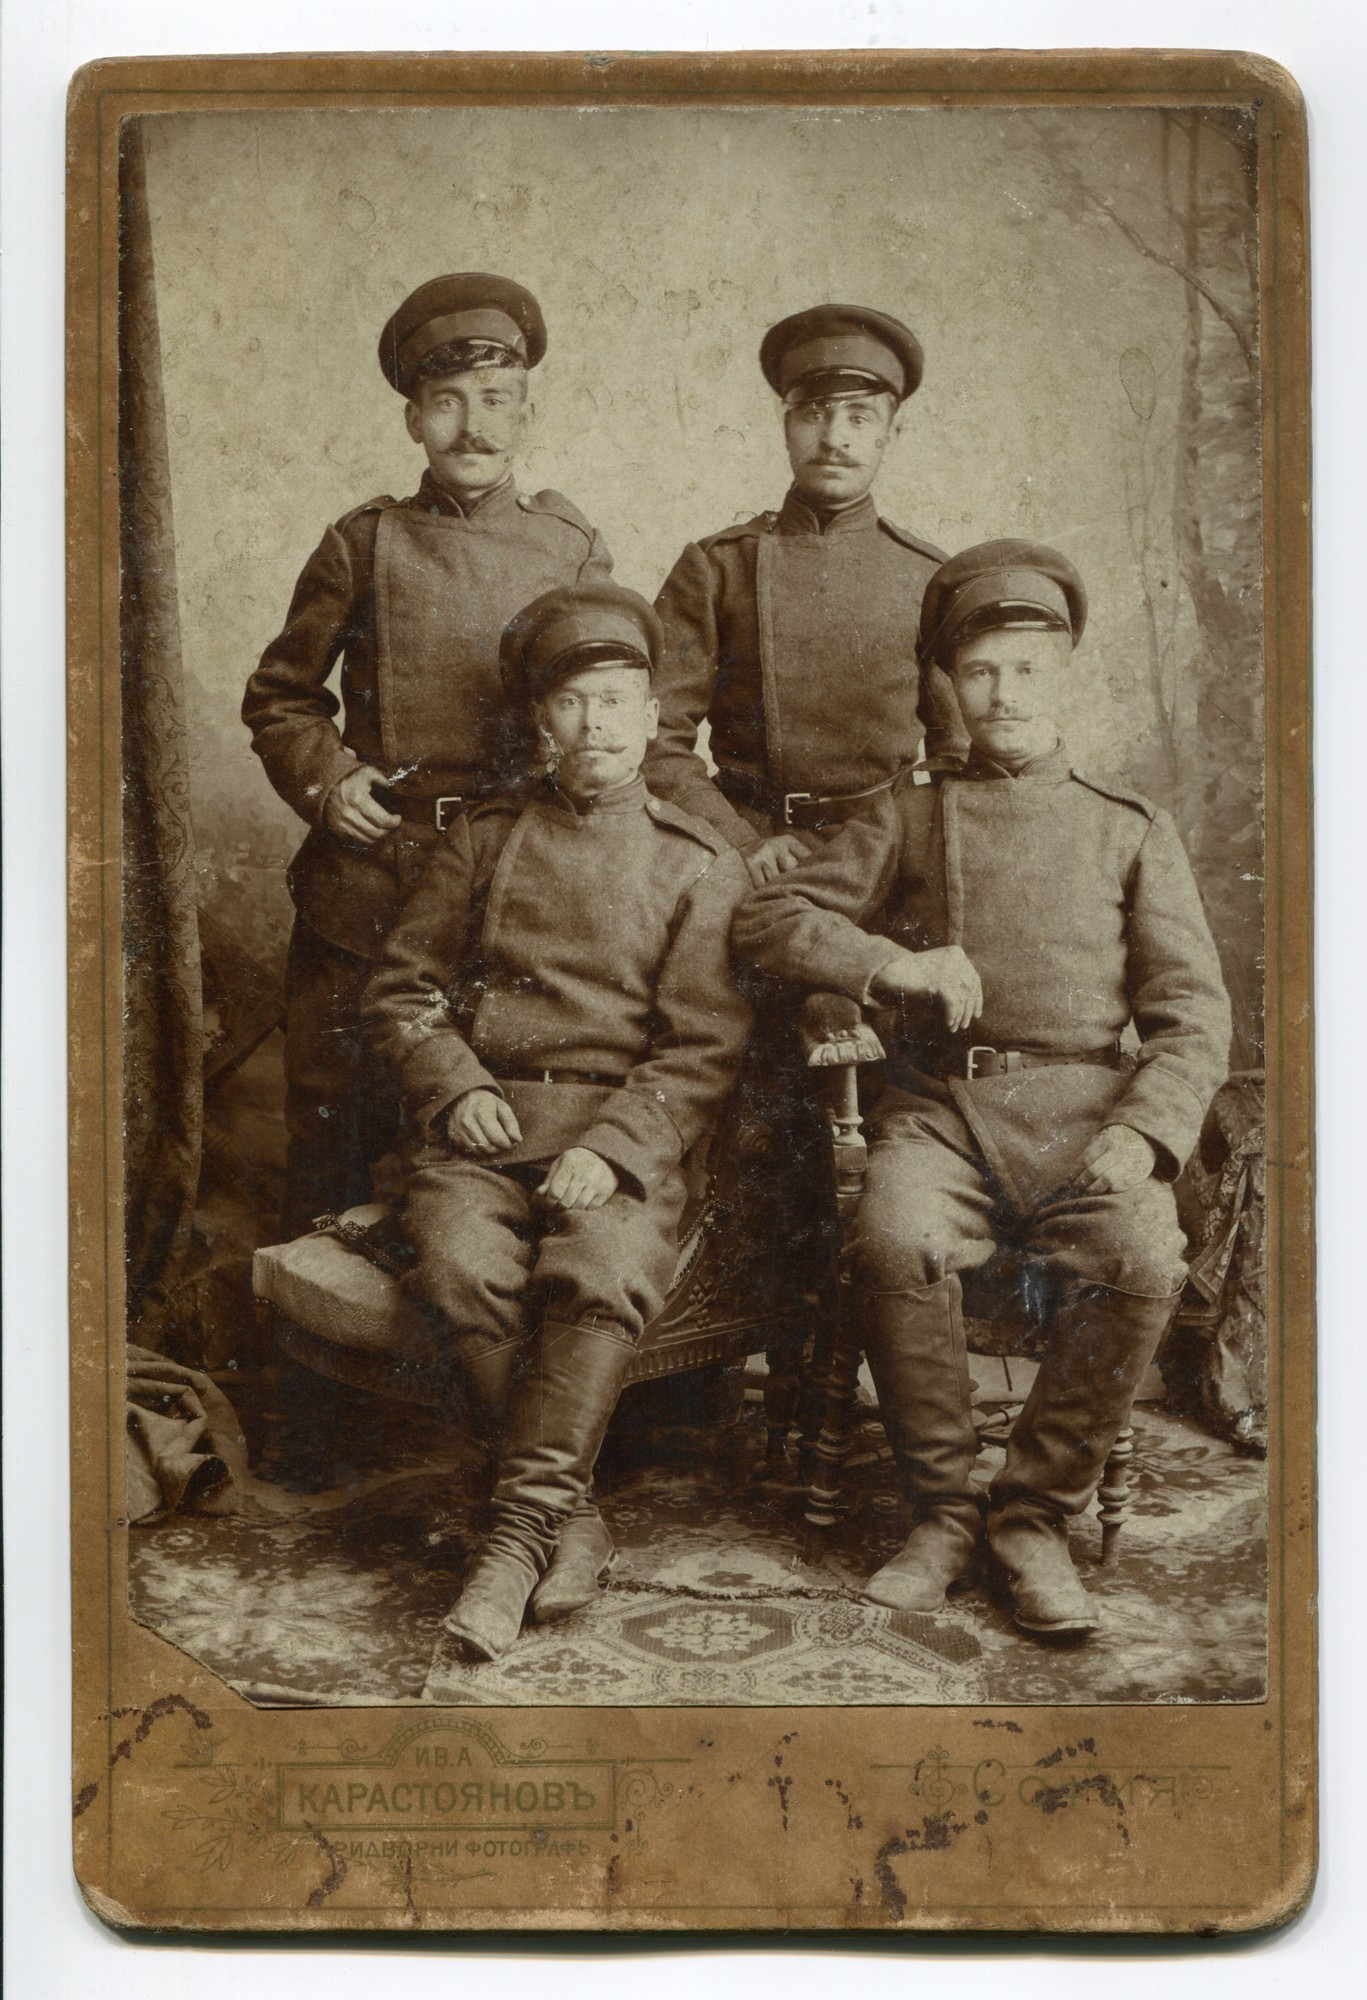 Studio group portrait of four men in uniforms, © Anelia Alexandrova Kassabova